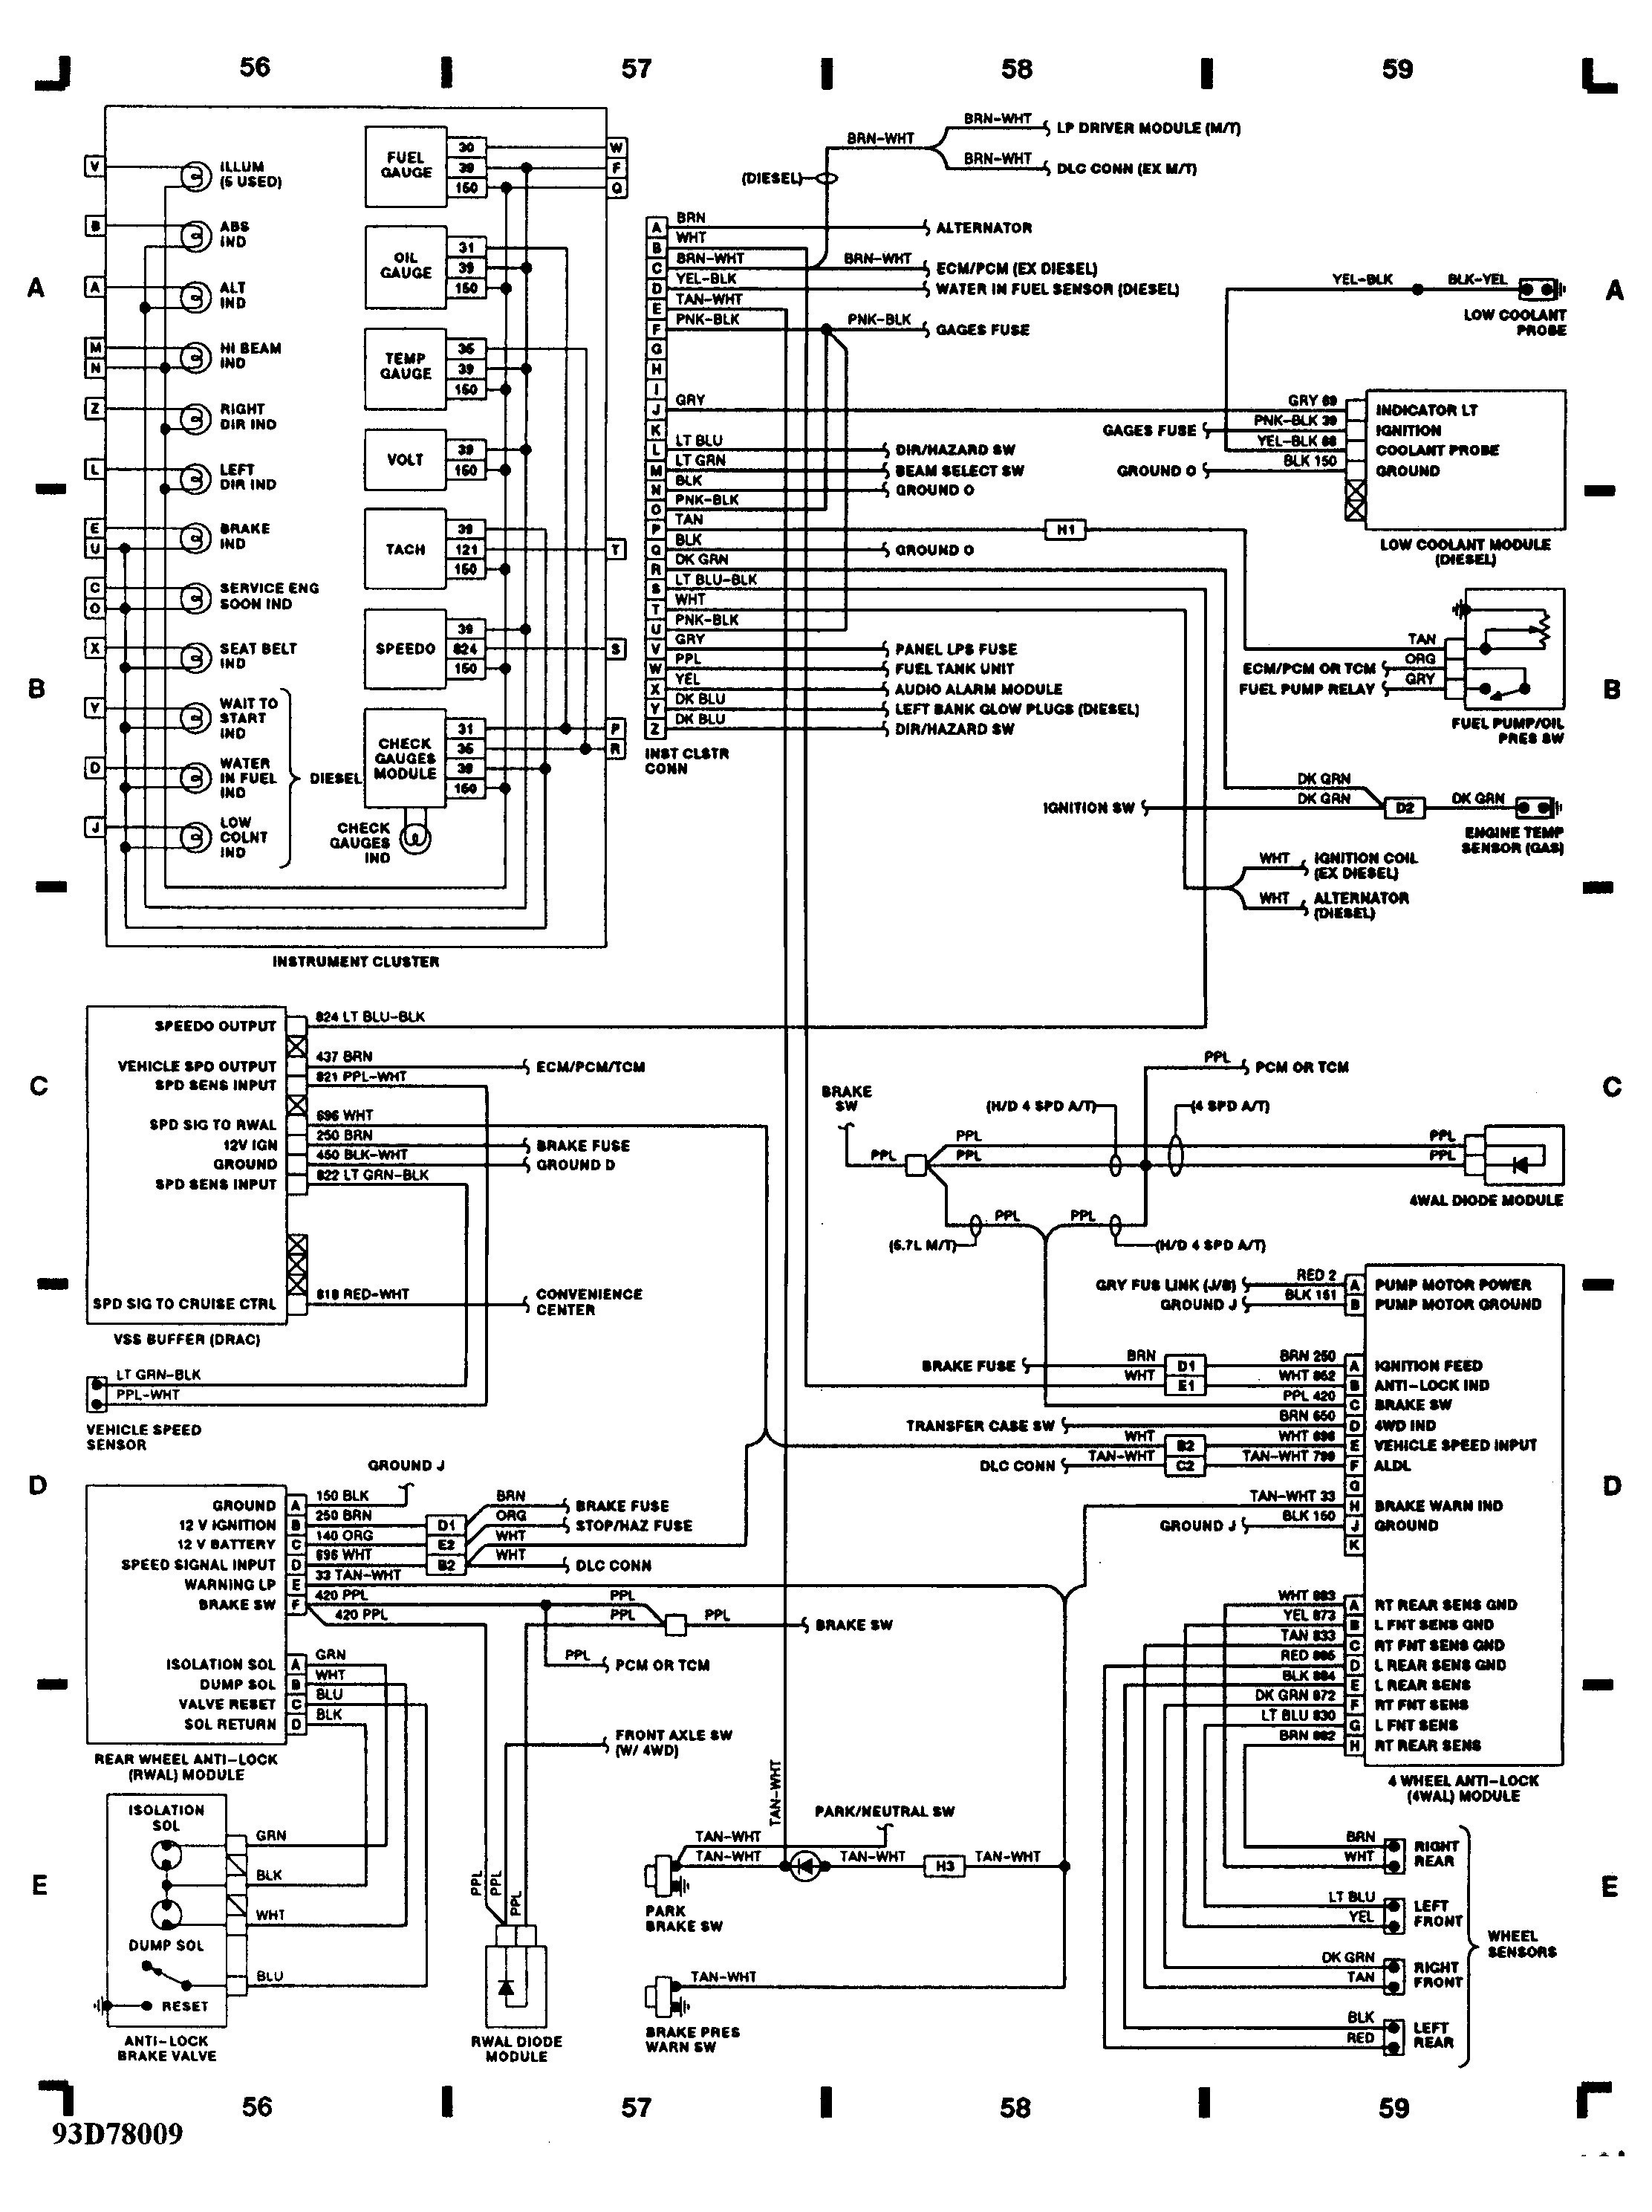 2003 Chevy Suburban Engine Diagram Archive Of Automotive Wiring For 2008 1990 Trusted Rh Dafpods Co